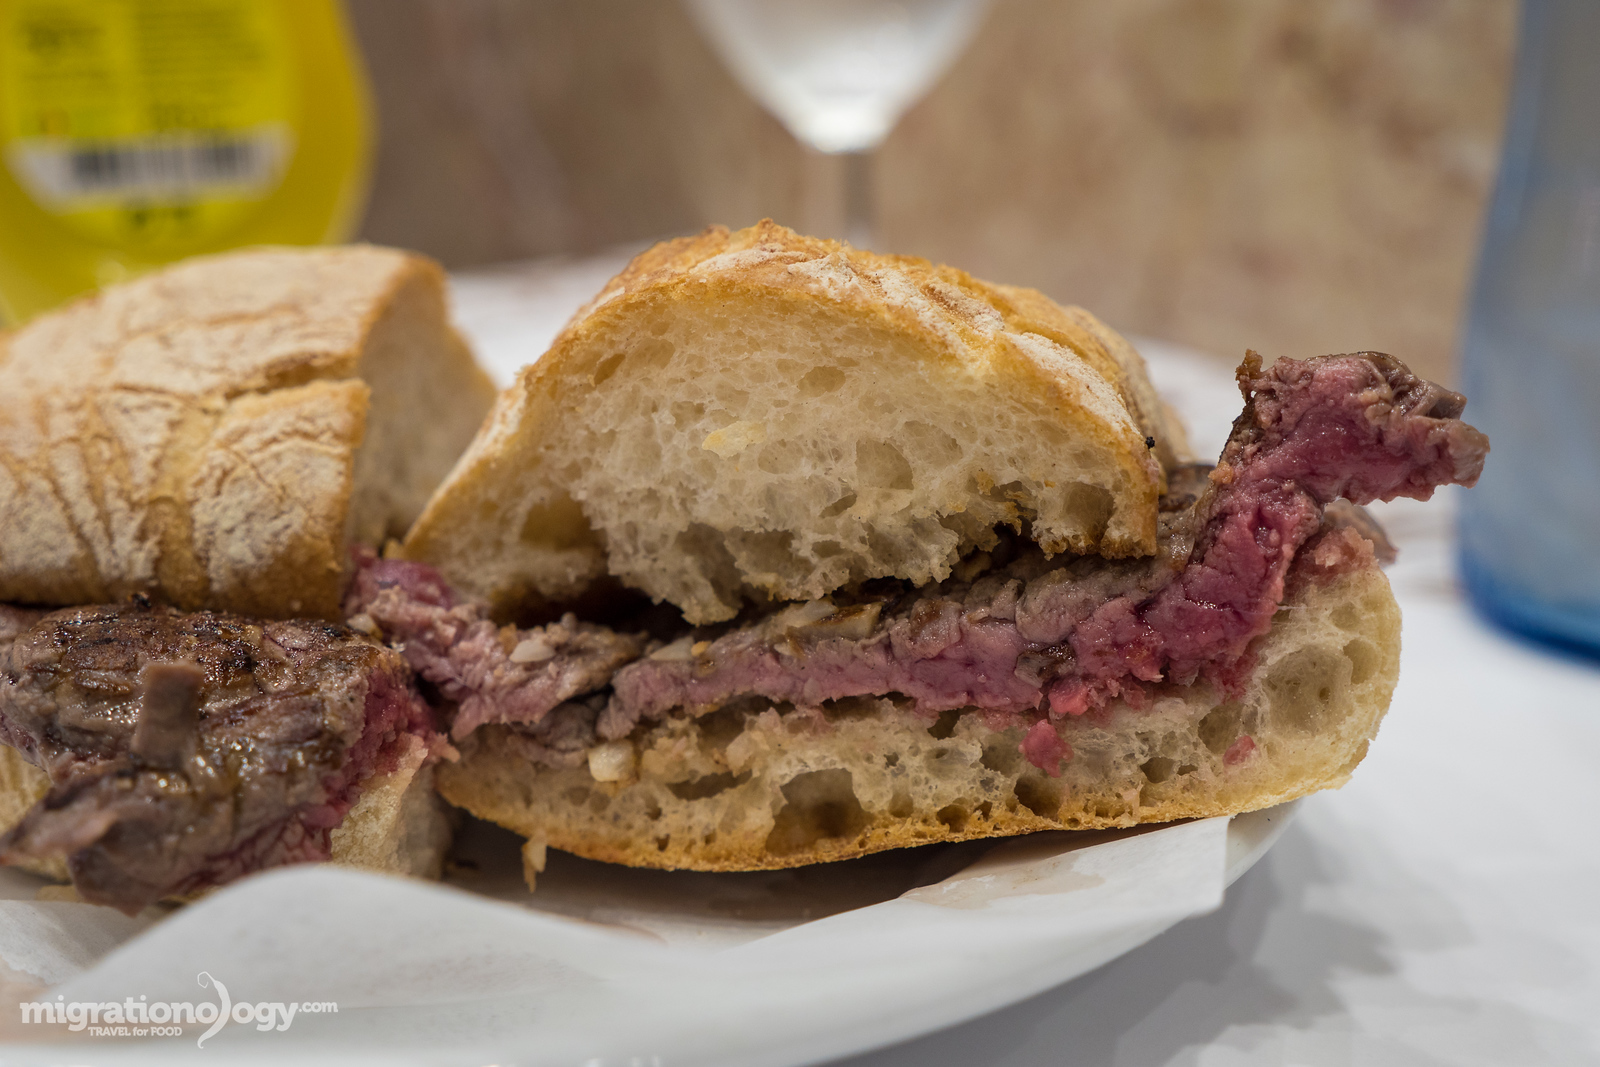 Portuguese steak sandwich